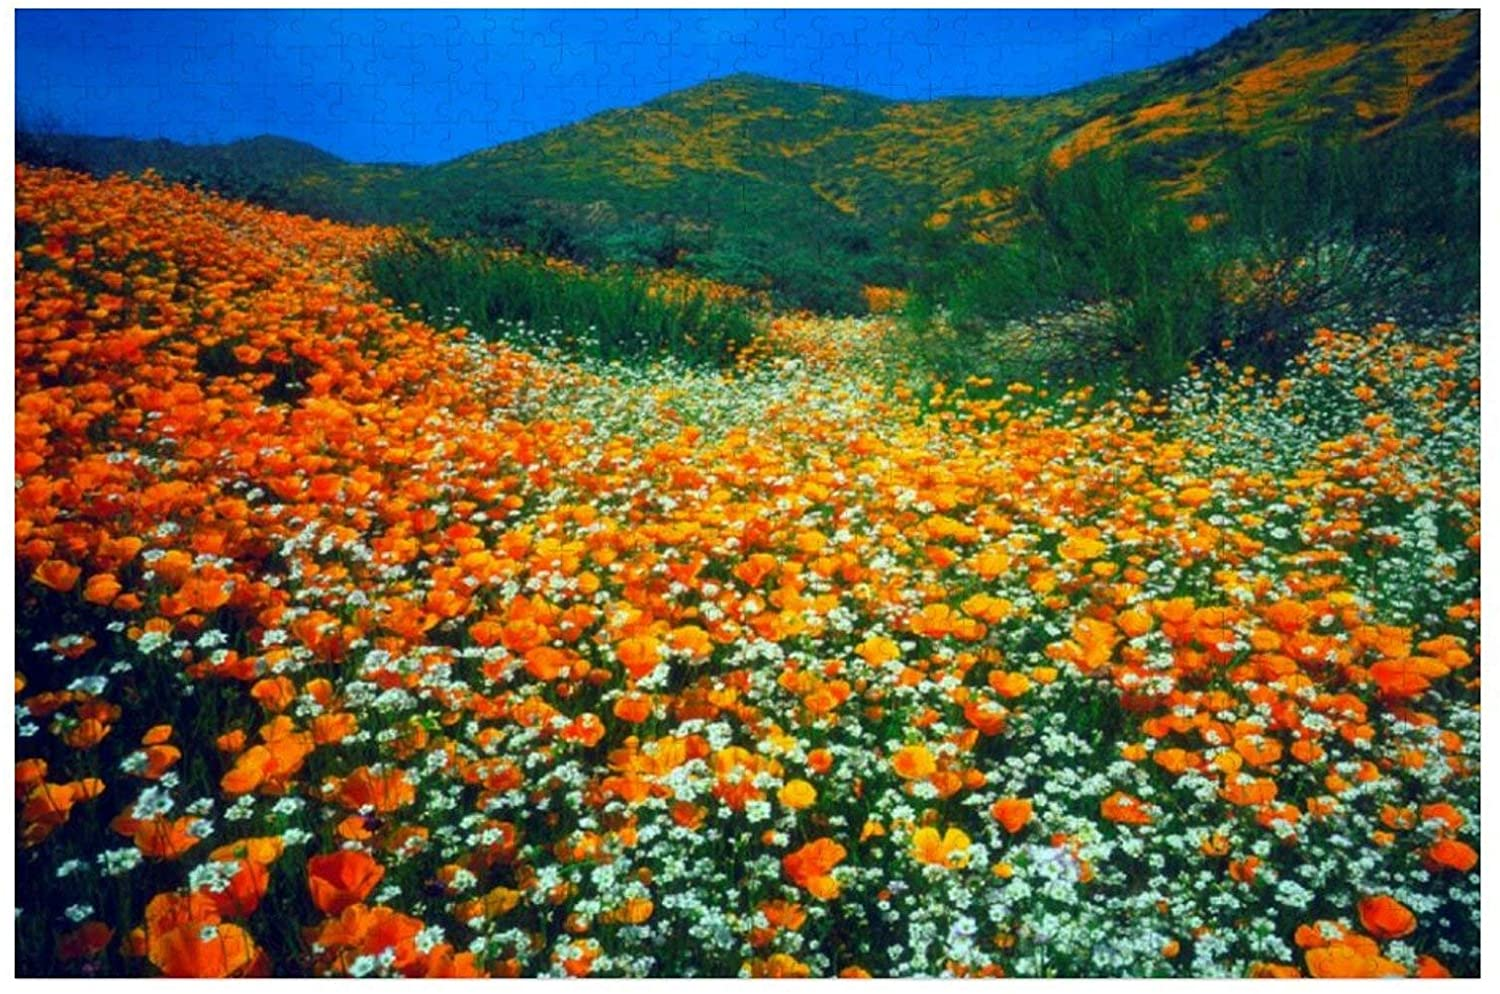 California Poppies and Popcorn Wildflowers Puzzles for Adults, 500 Piece Kids Jigsaw Puzzles Game Toys Gift for Children Boys and Girls, 15